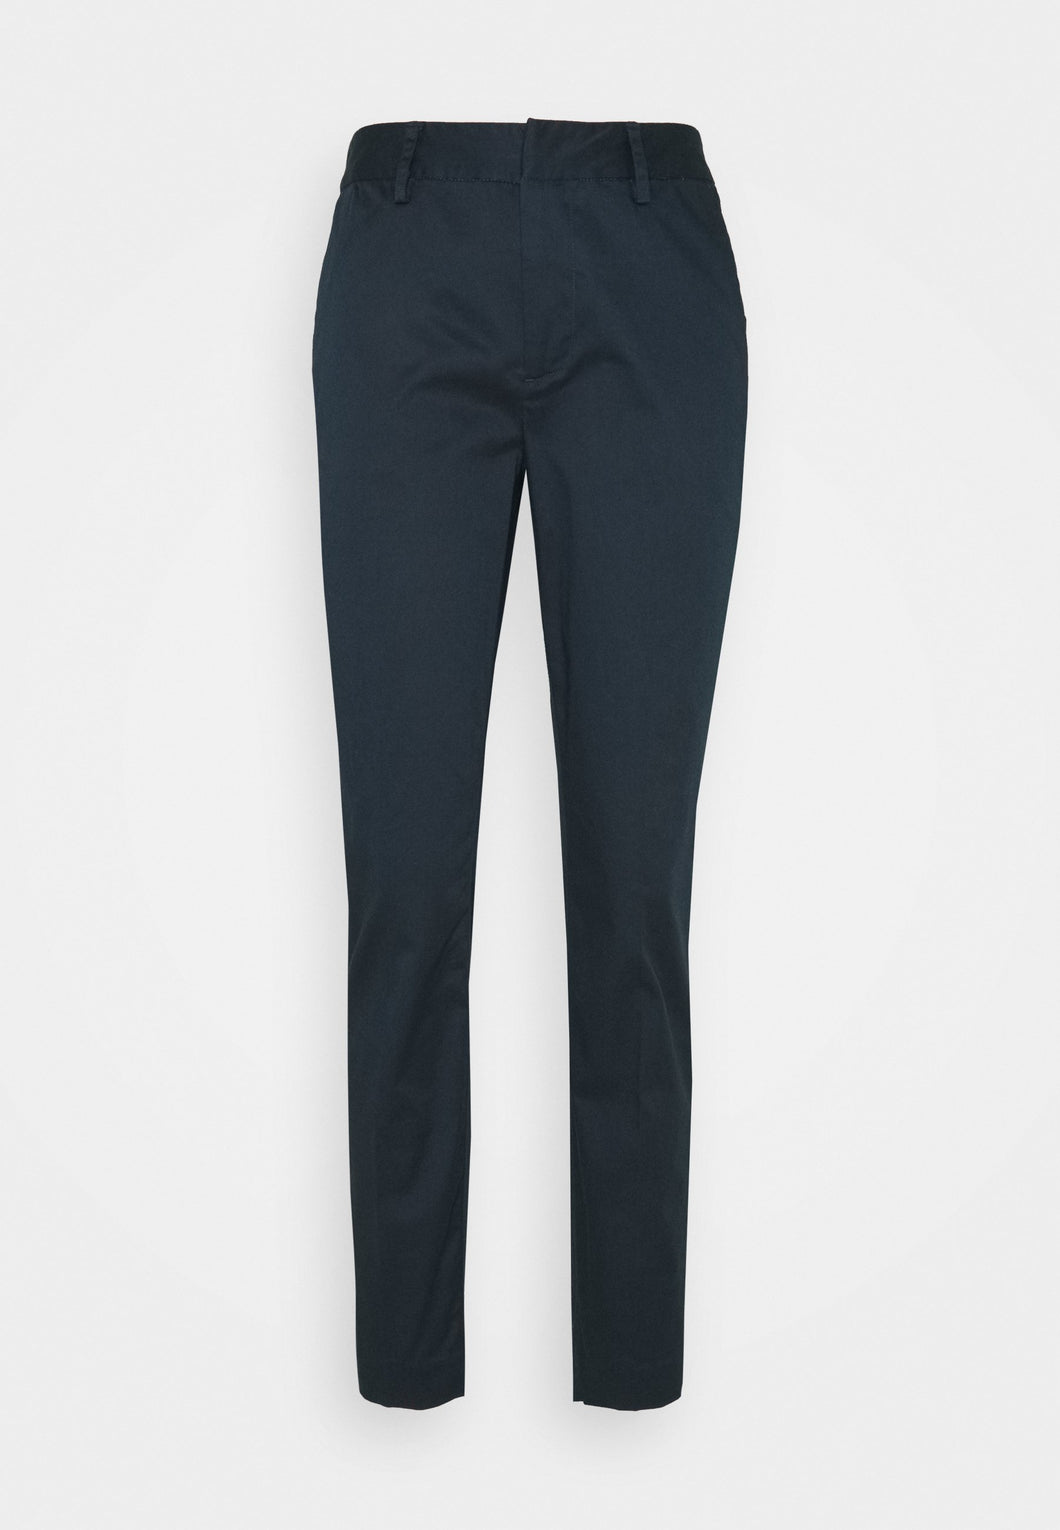 PANTALON CHINO BELL - SCOTCH AND SODA